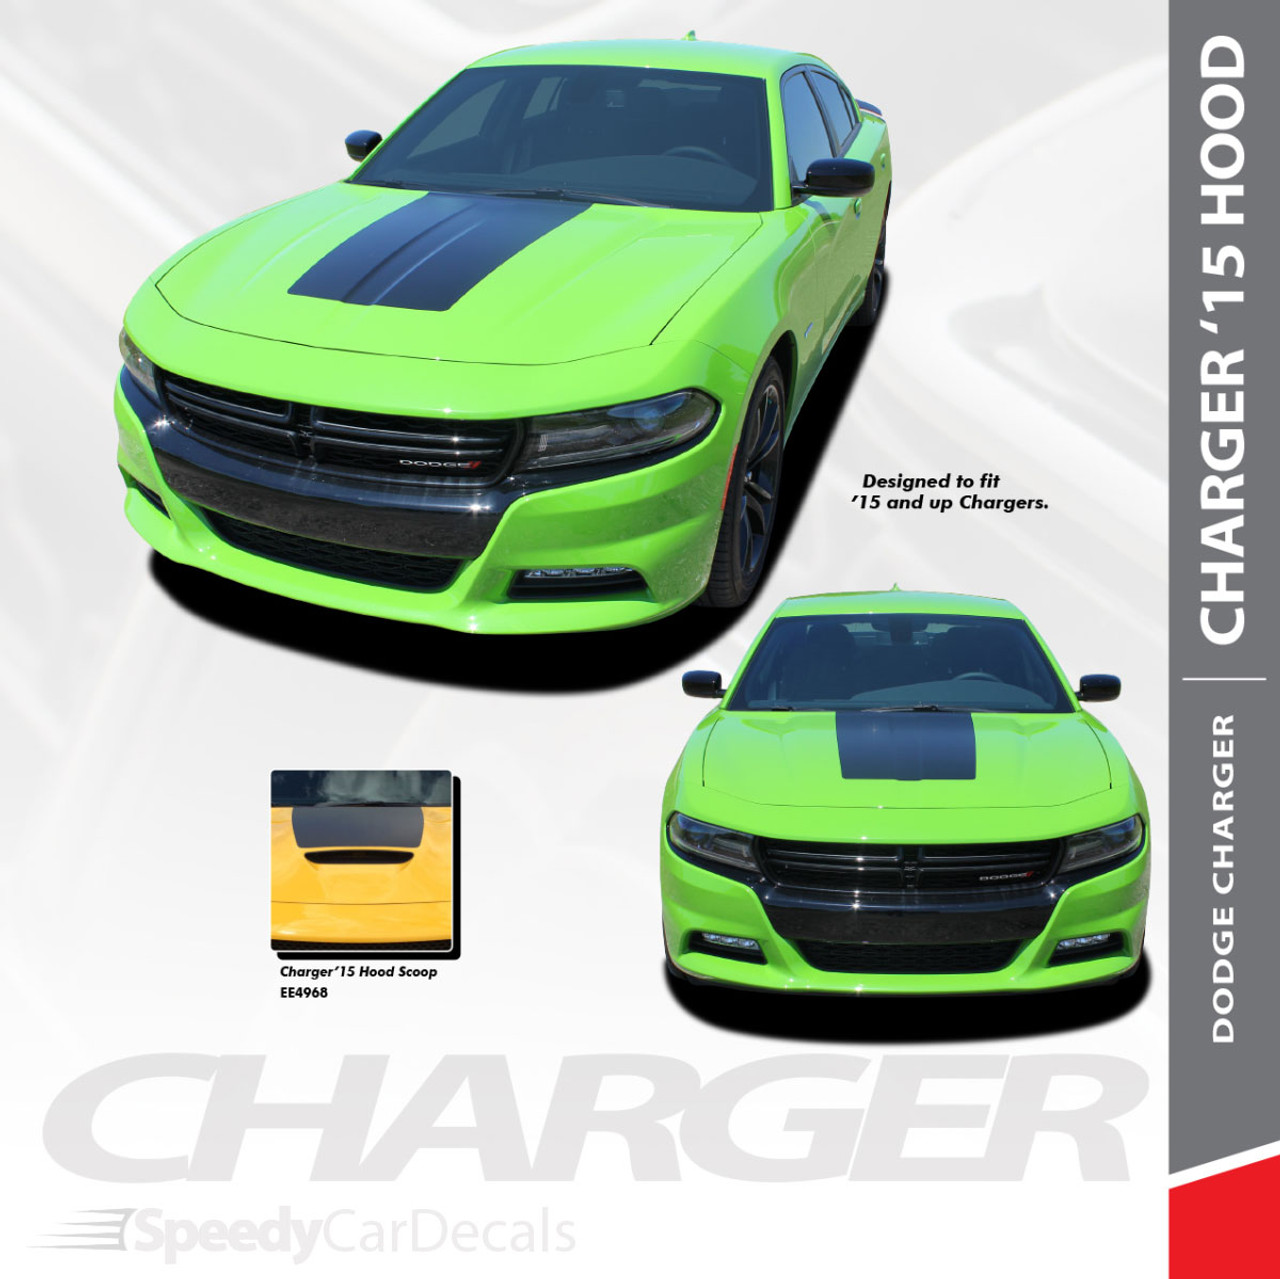 MULTI-COLOR CHARGER R//T Hash Stripes compatible for Dodge Charger Chellenger RT Durango Jeep Chrysler 392 Hemi 2014 2015 2016 2017 for hood fender